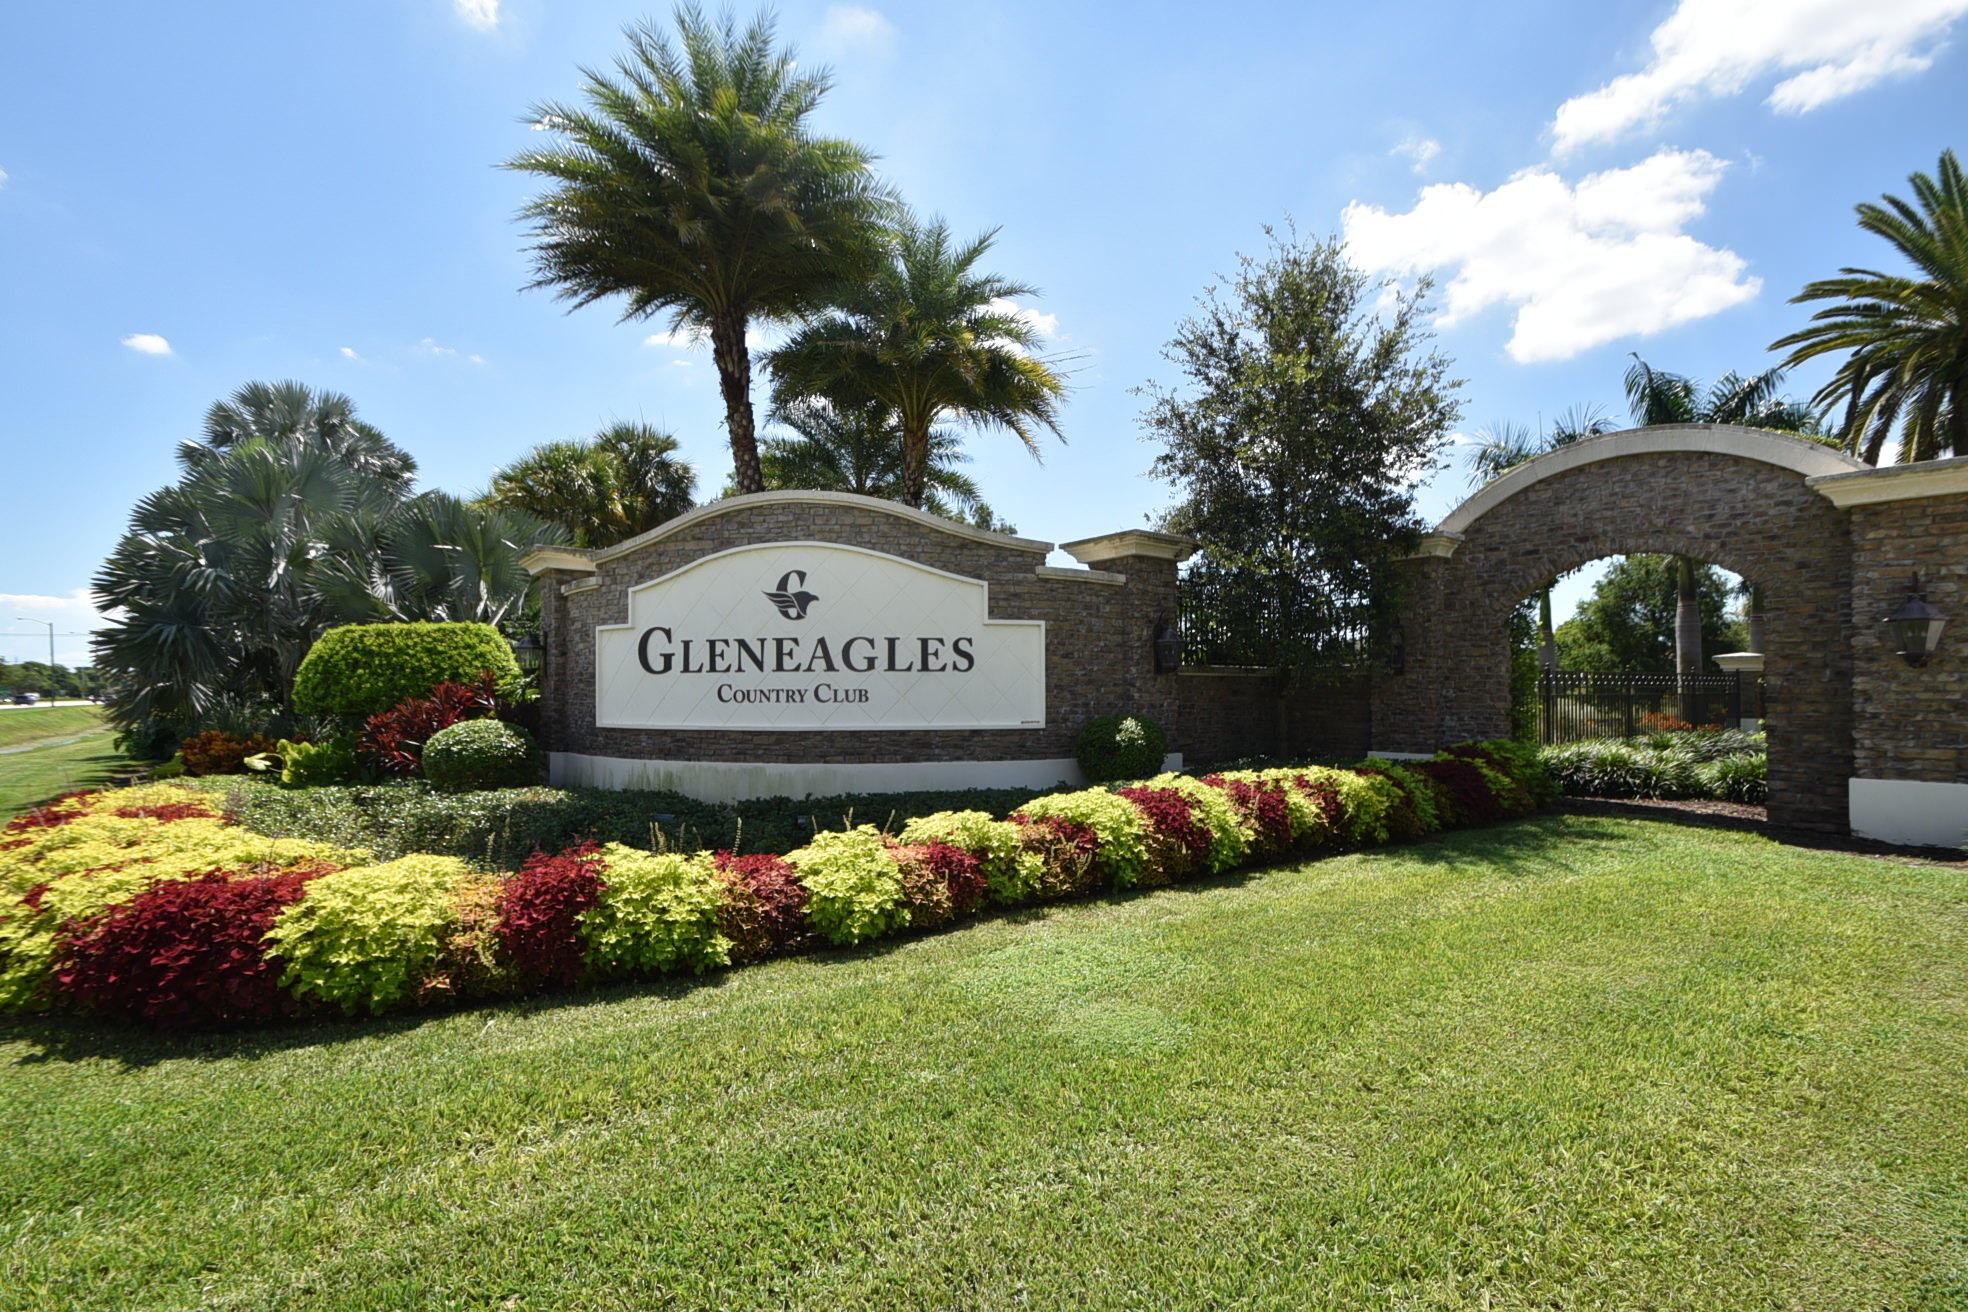 7533 Glendevon Lane, Delray Beach, Florida 33446, 2 Bedrooms Bedrooms, ,2 BathroomsBathrooms,Condo/Coop,For Sale,Gleneagles,Glendevon,2,RX-10440529